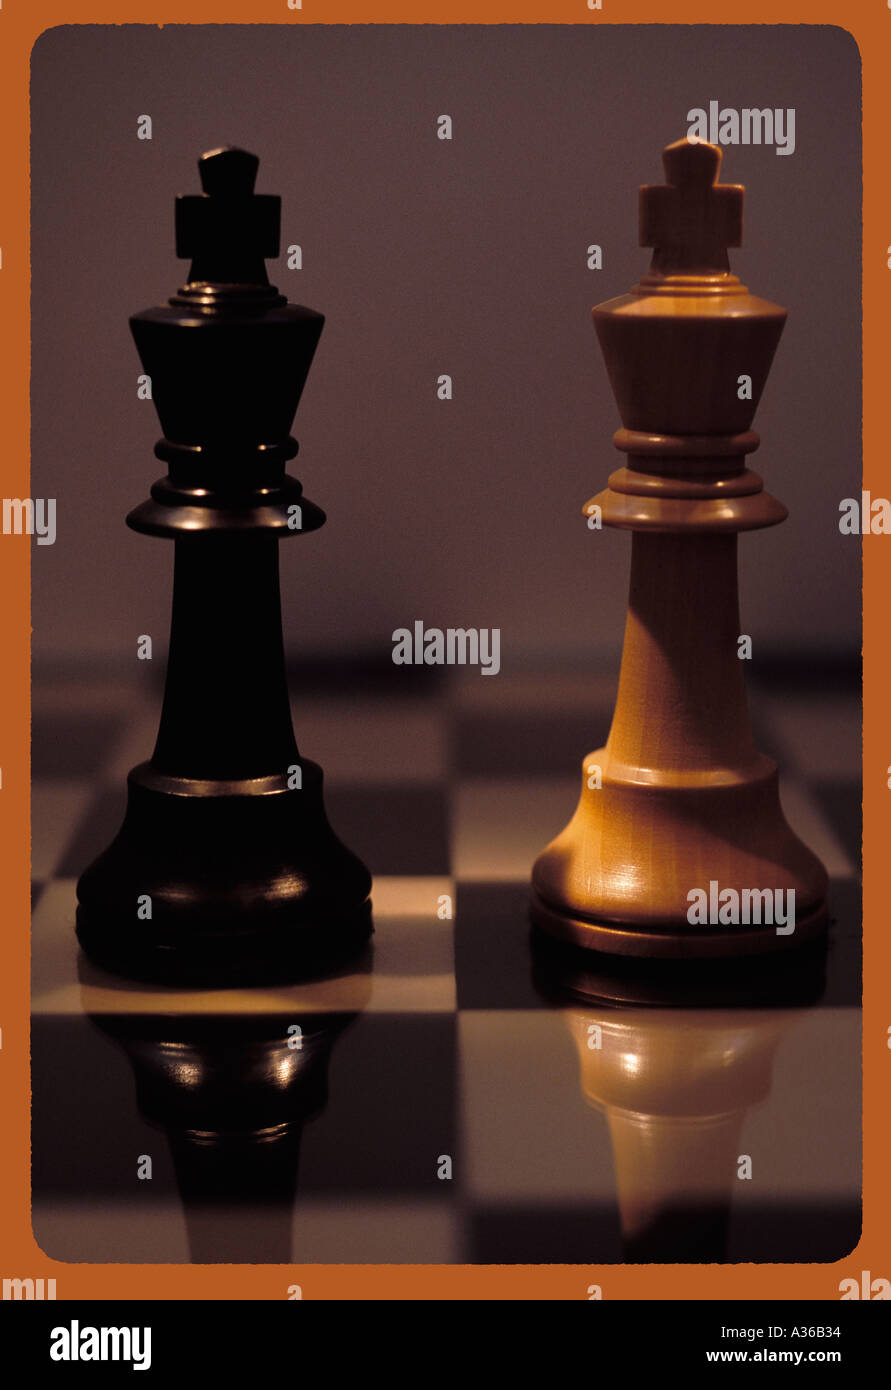 Two kings standing opposite each other on chessboard - Stock Image